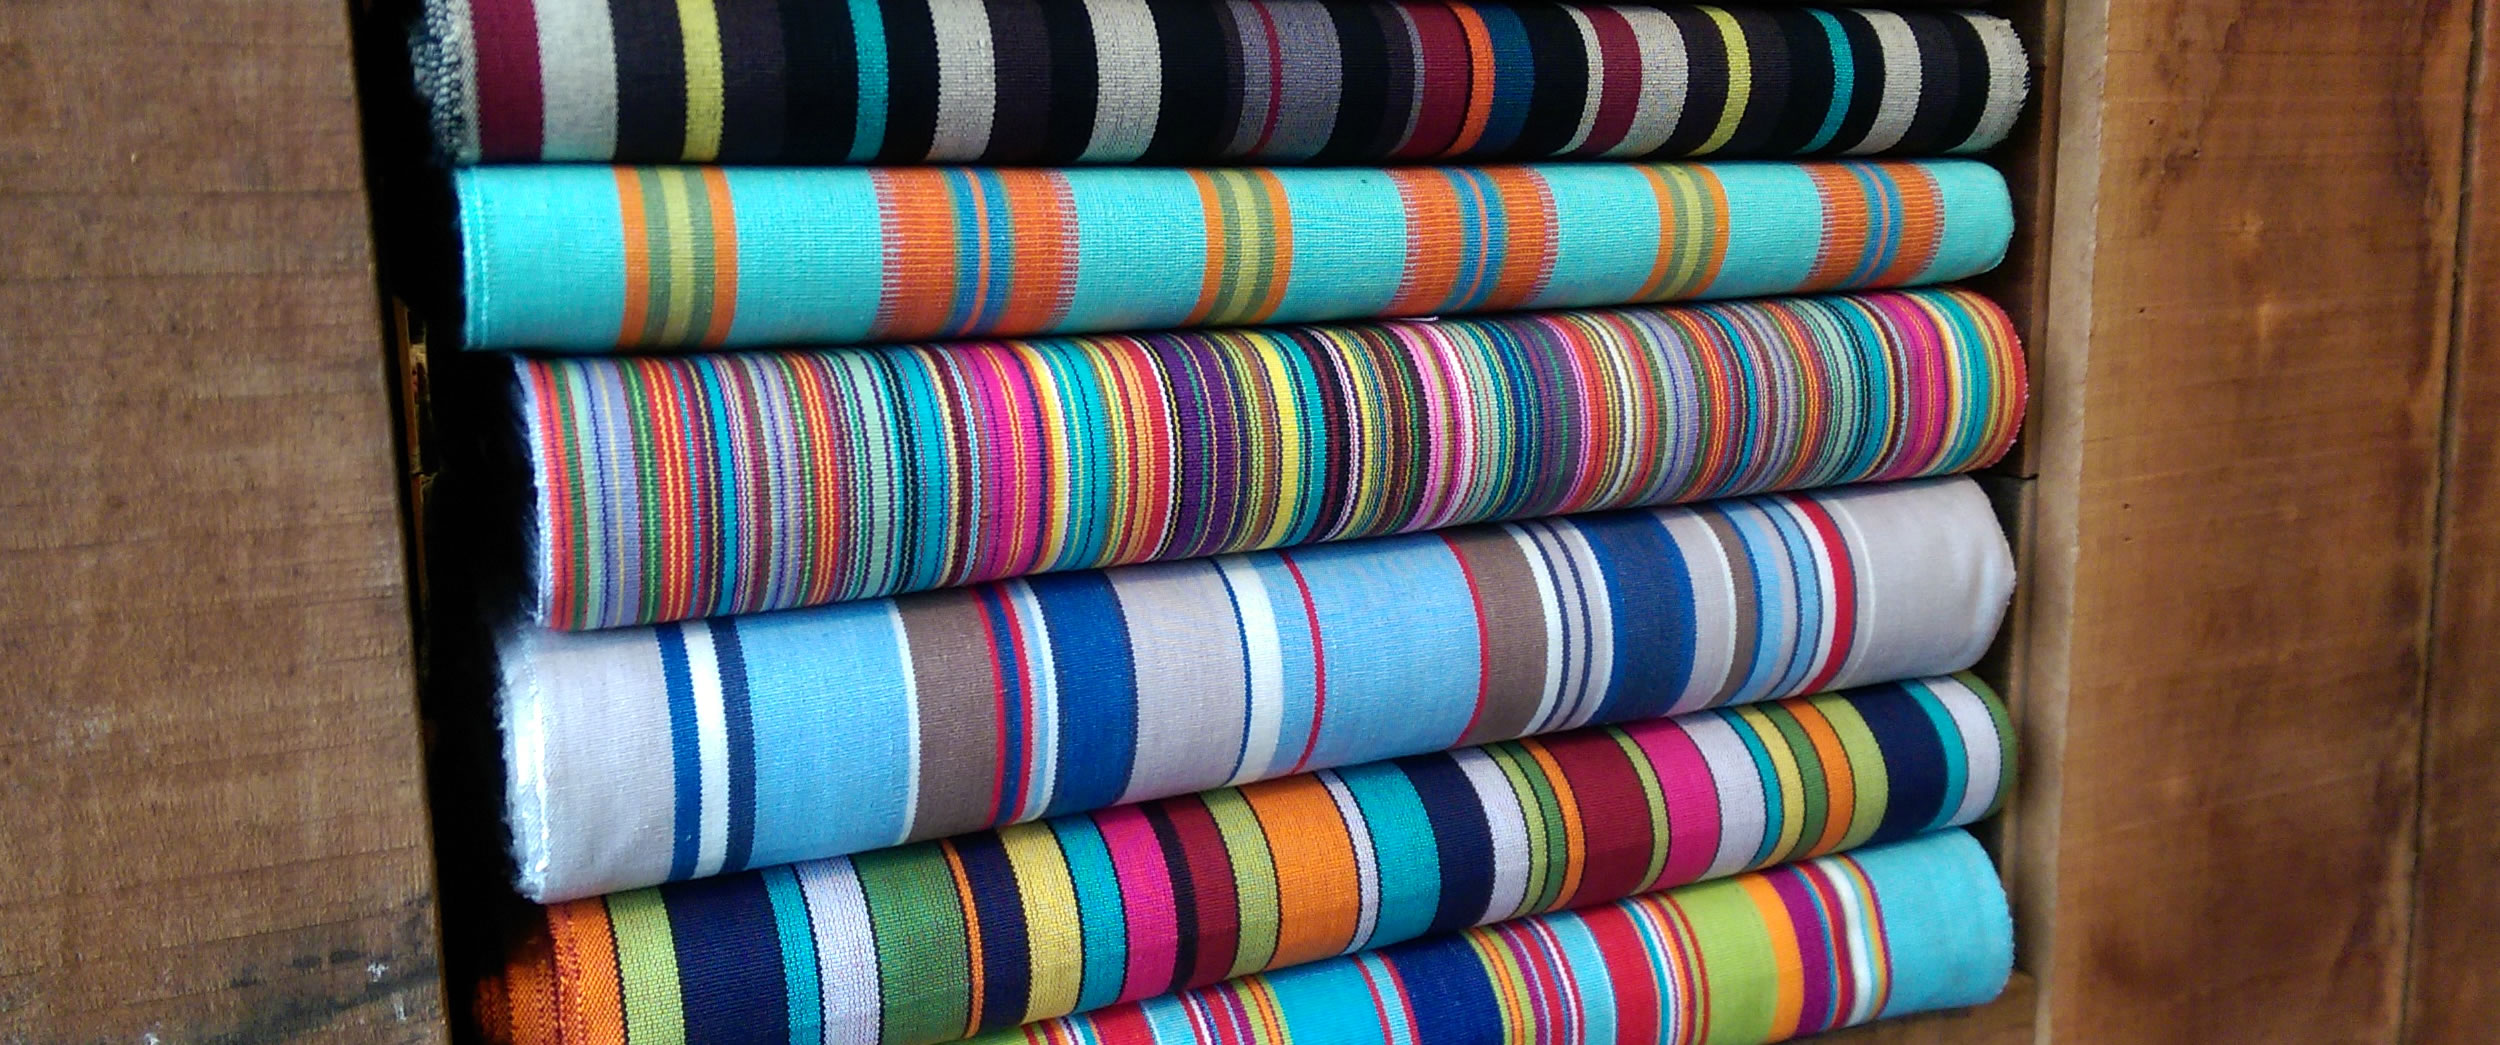 thin rainbow multi stripes - Deckchair Canvas | Deckchair Fabrics | Striped Deck Chair Fabrics